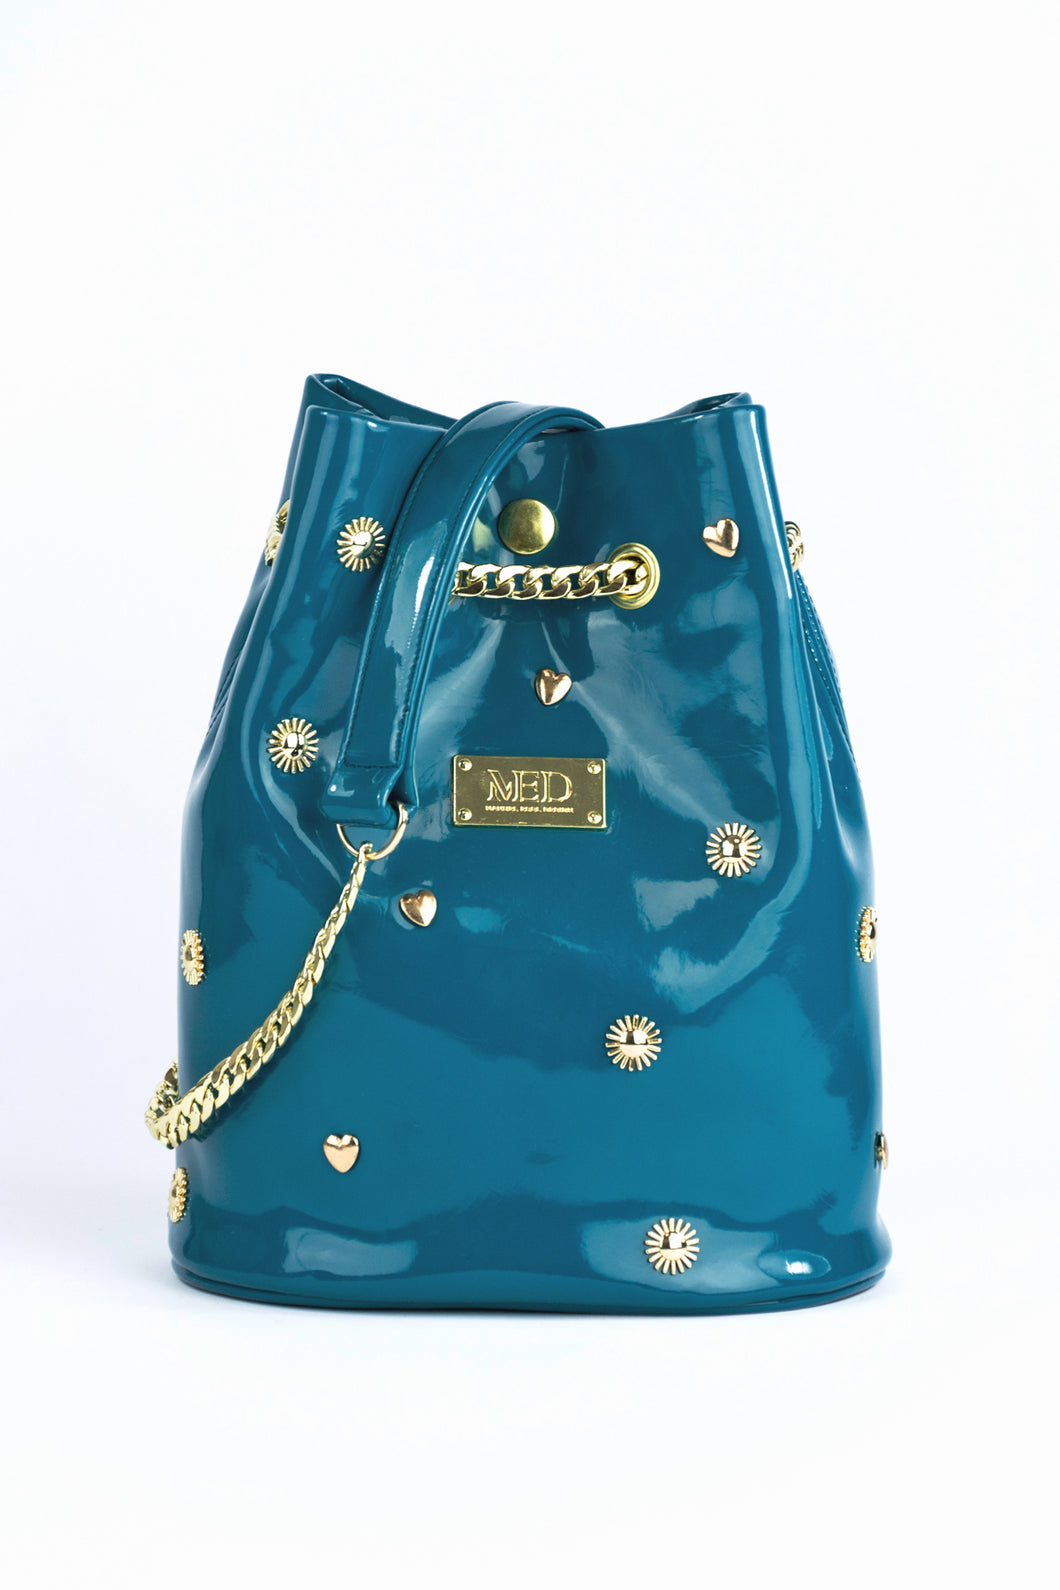 Bucket Bag in vegan Patent Leather - petrol